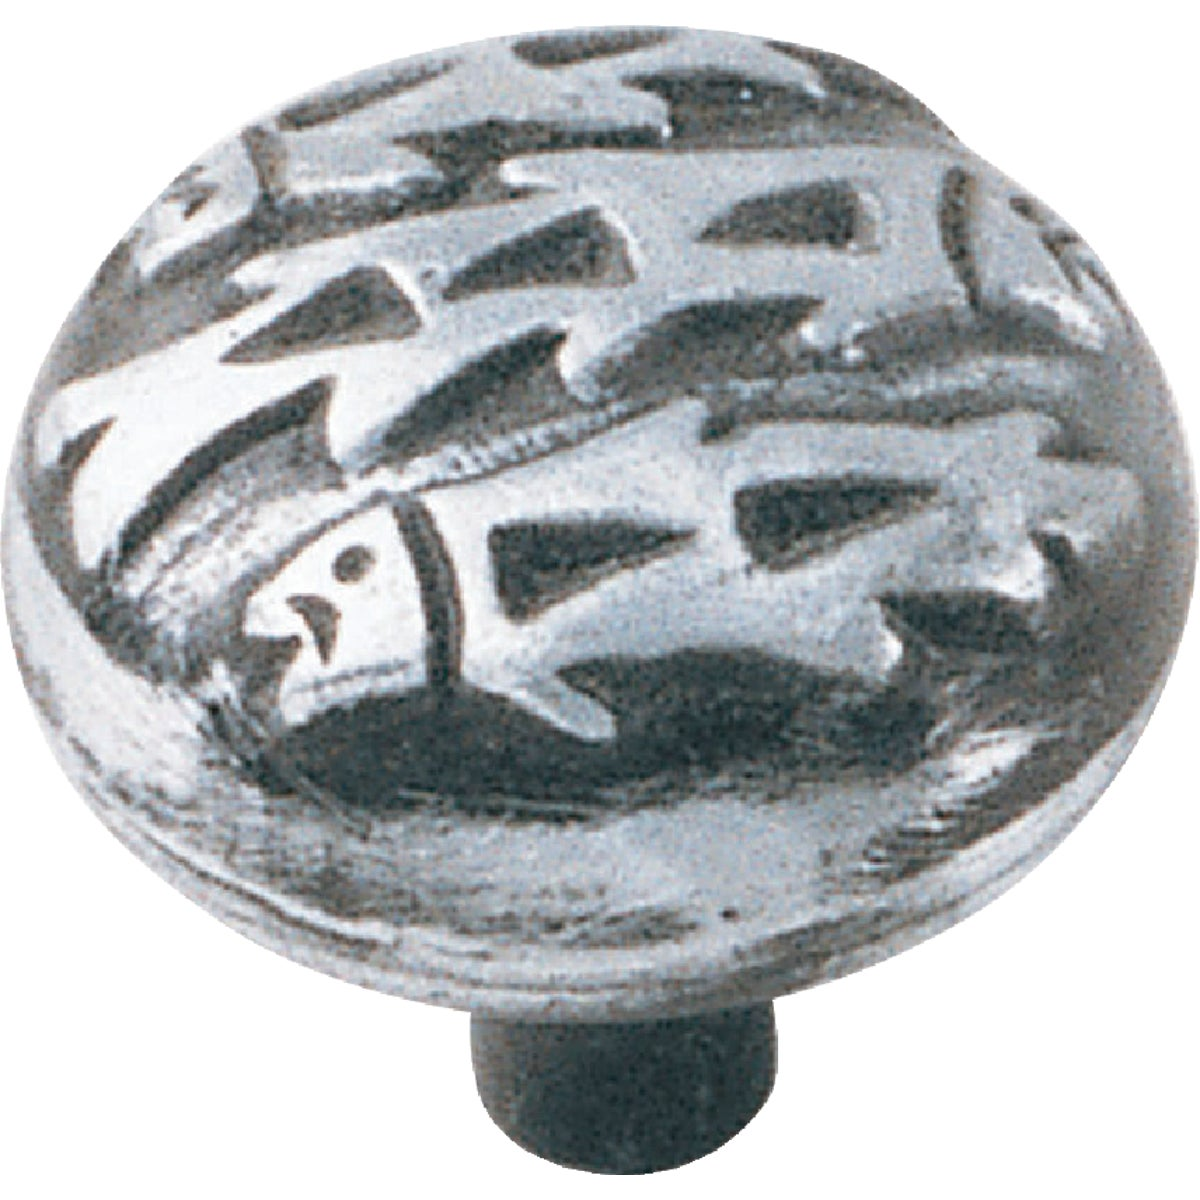 "1-1/2"" SILVERADO KNOB - 53660 by Laurey Co"